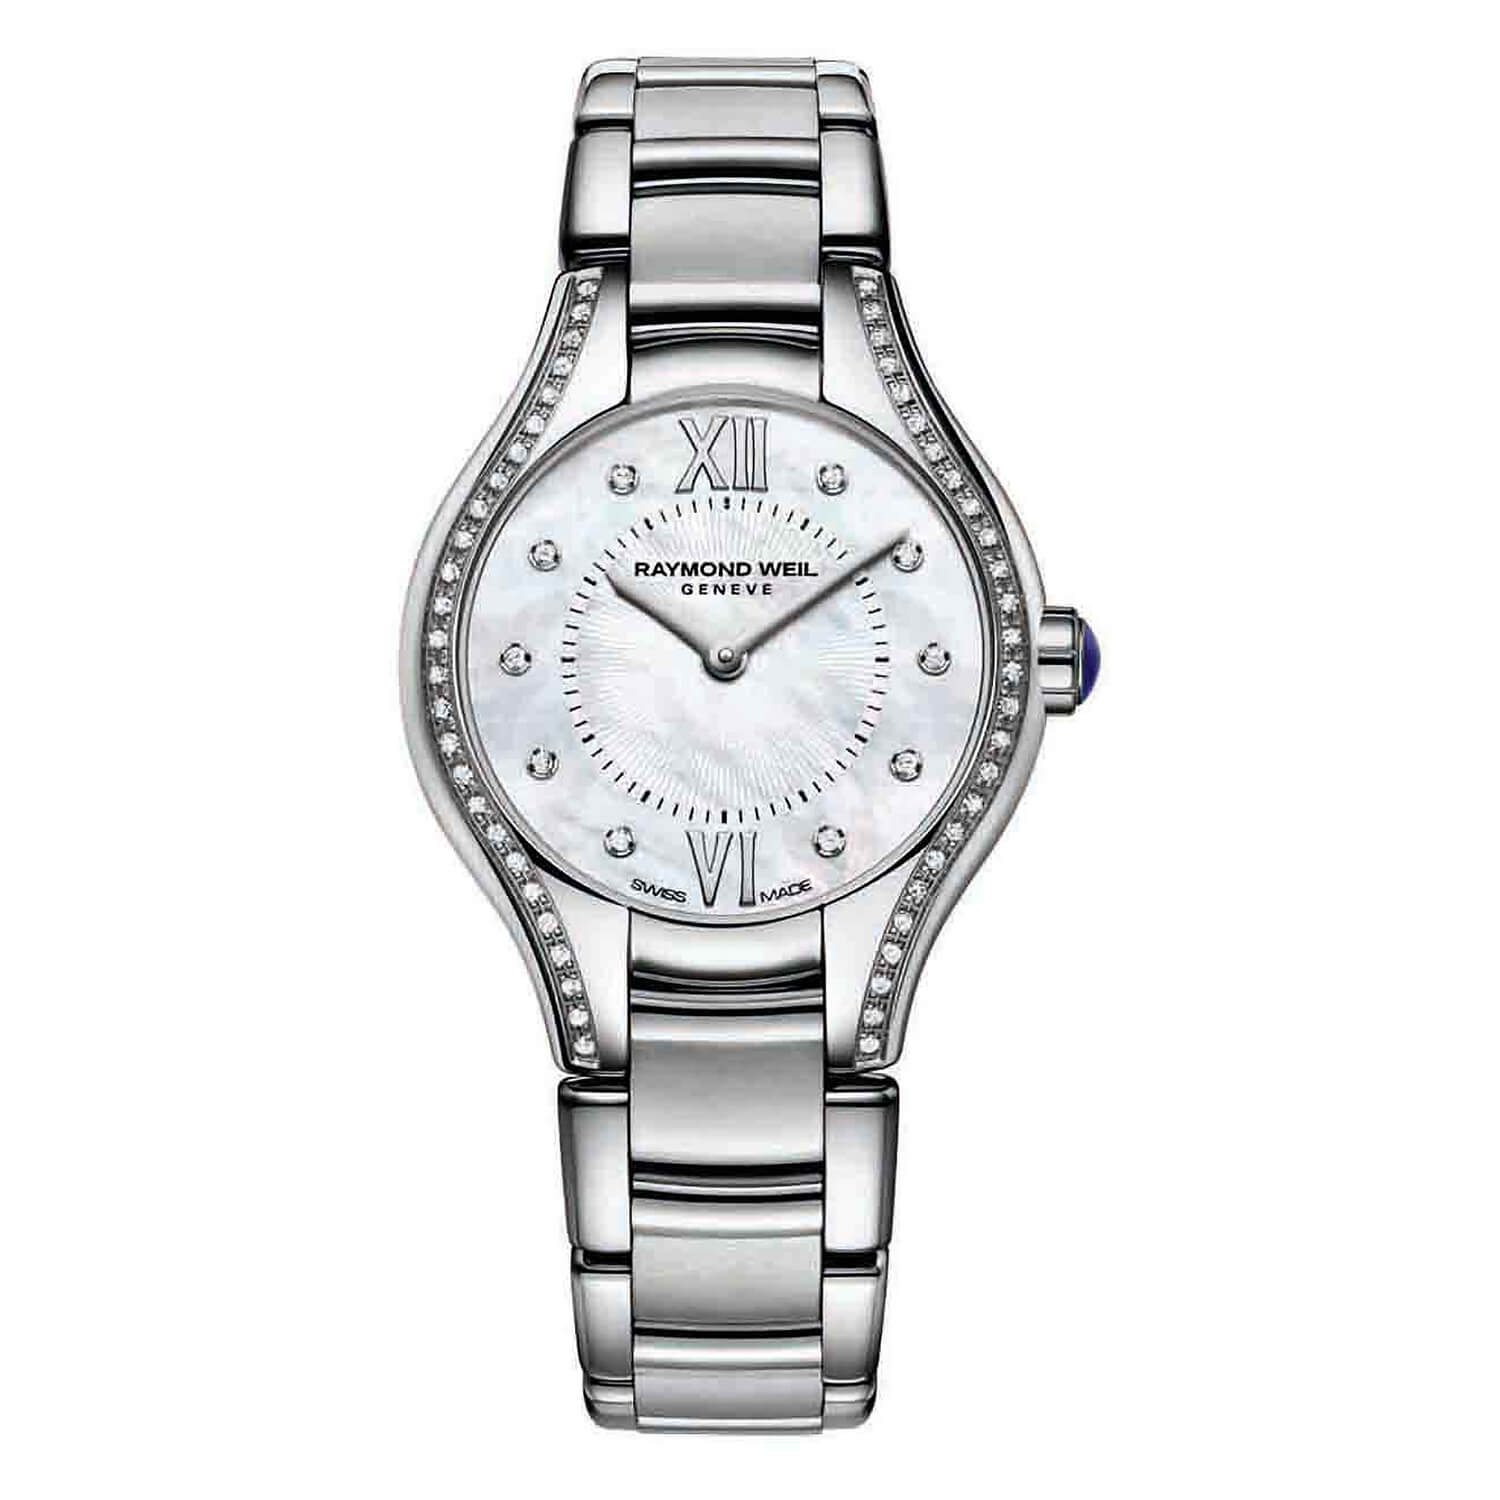 Raymond Weil Noemia ladies' diamond-set stainless steel bracelet watch